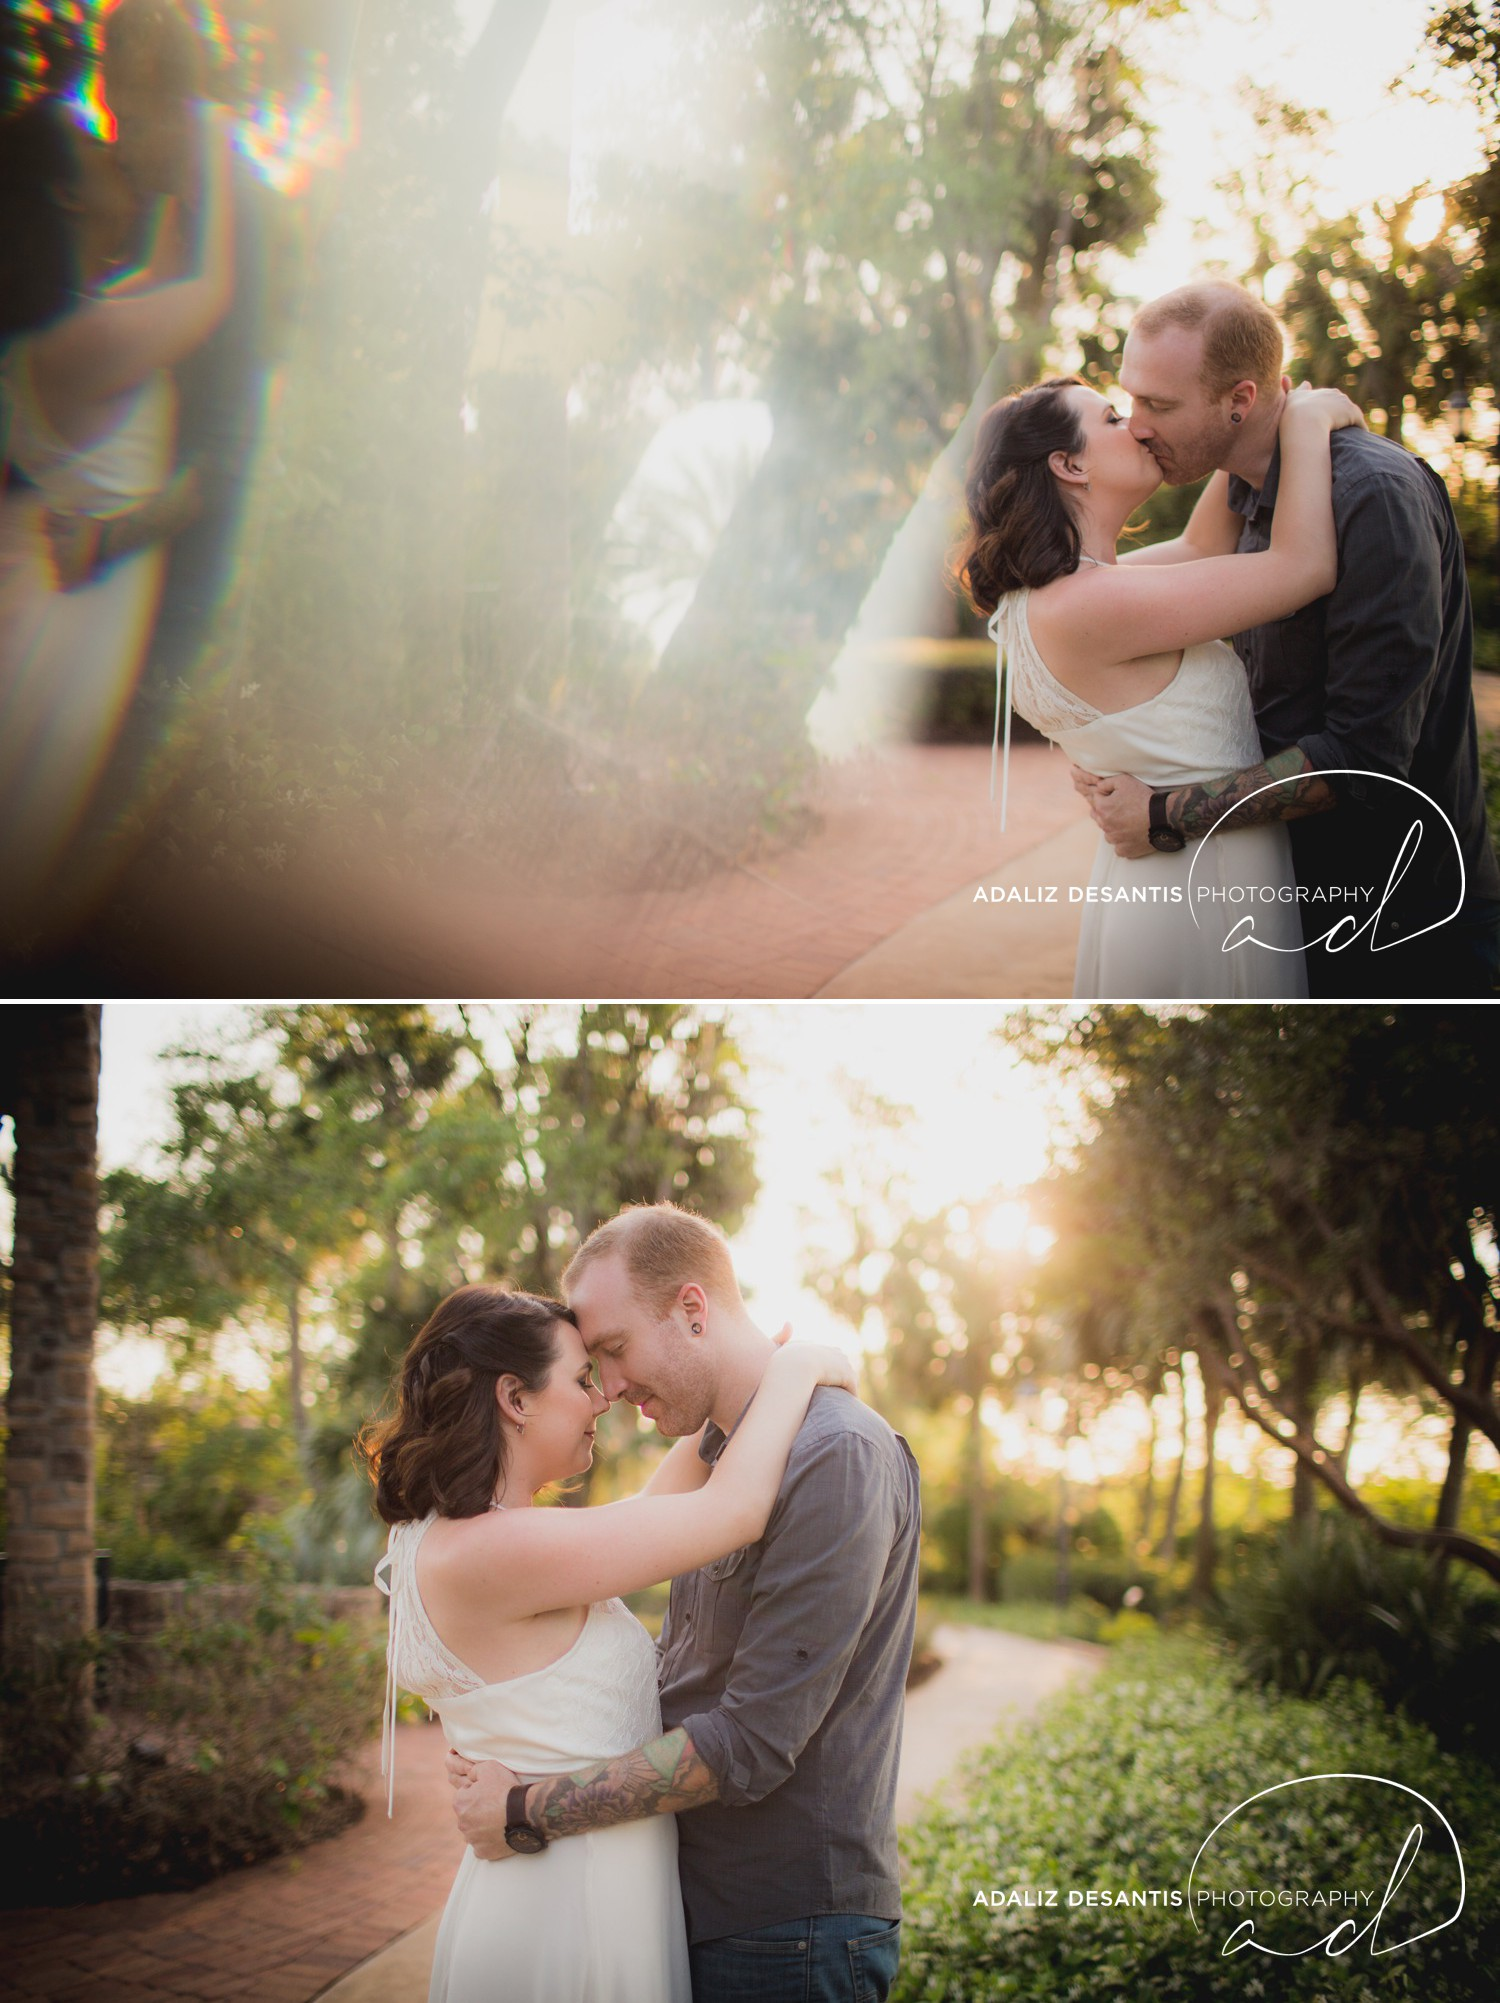 parkland golf and country club engagement session fort lauderdale south flrida 10.jpg